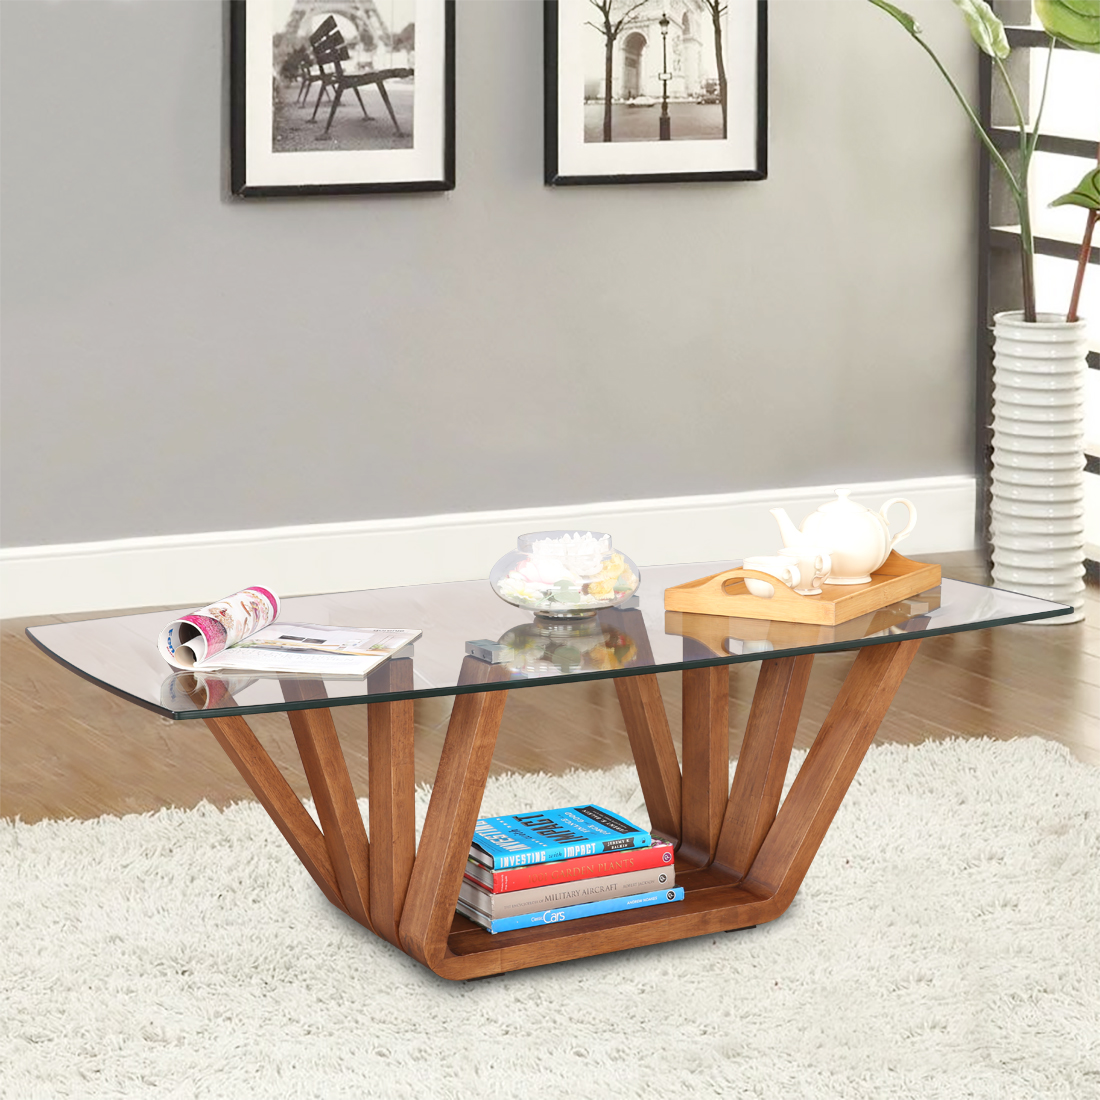 Hobart Engineered Wood Glass Top Center Table in Brown Colour by HomeTown